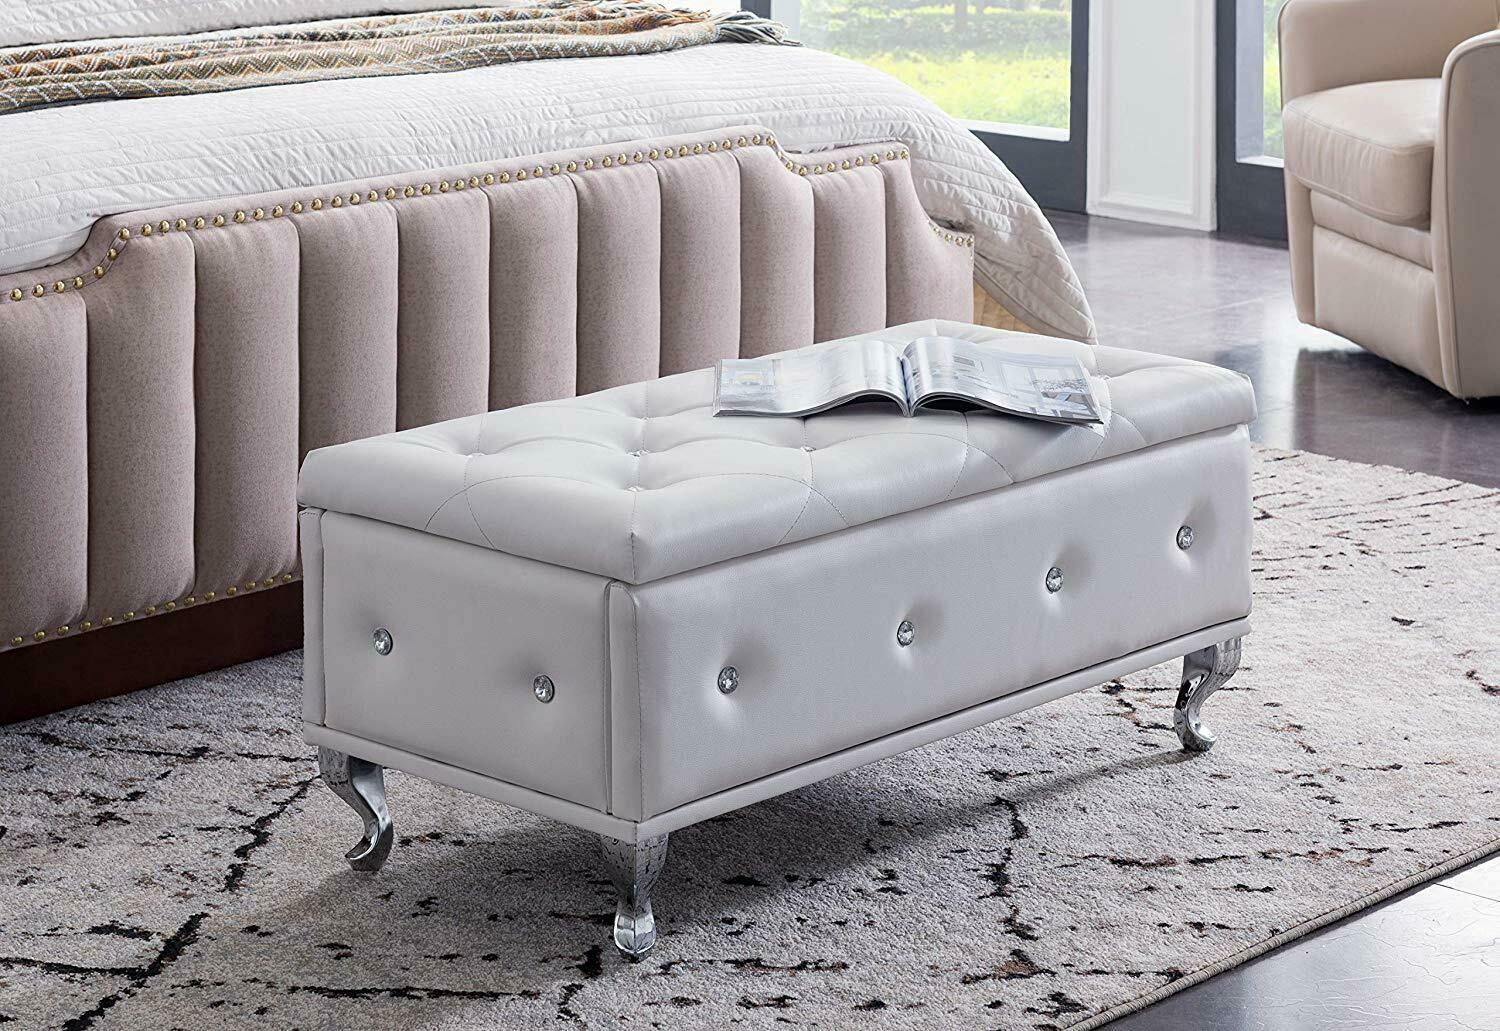 kings brand furniture tufted design white upholstered storage bench ottoman